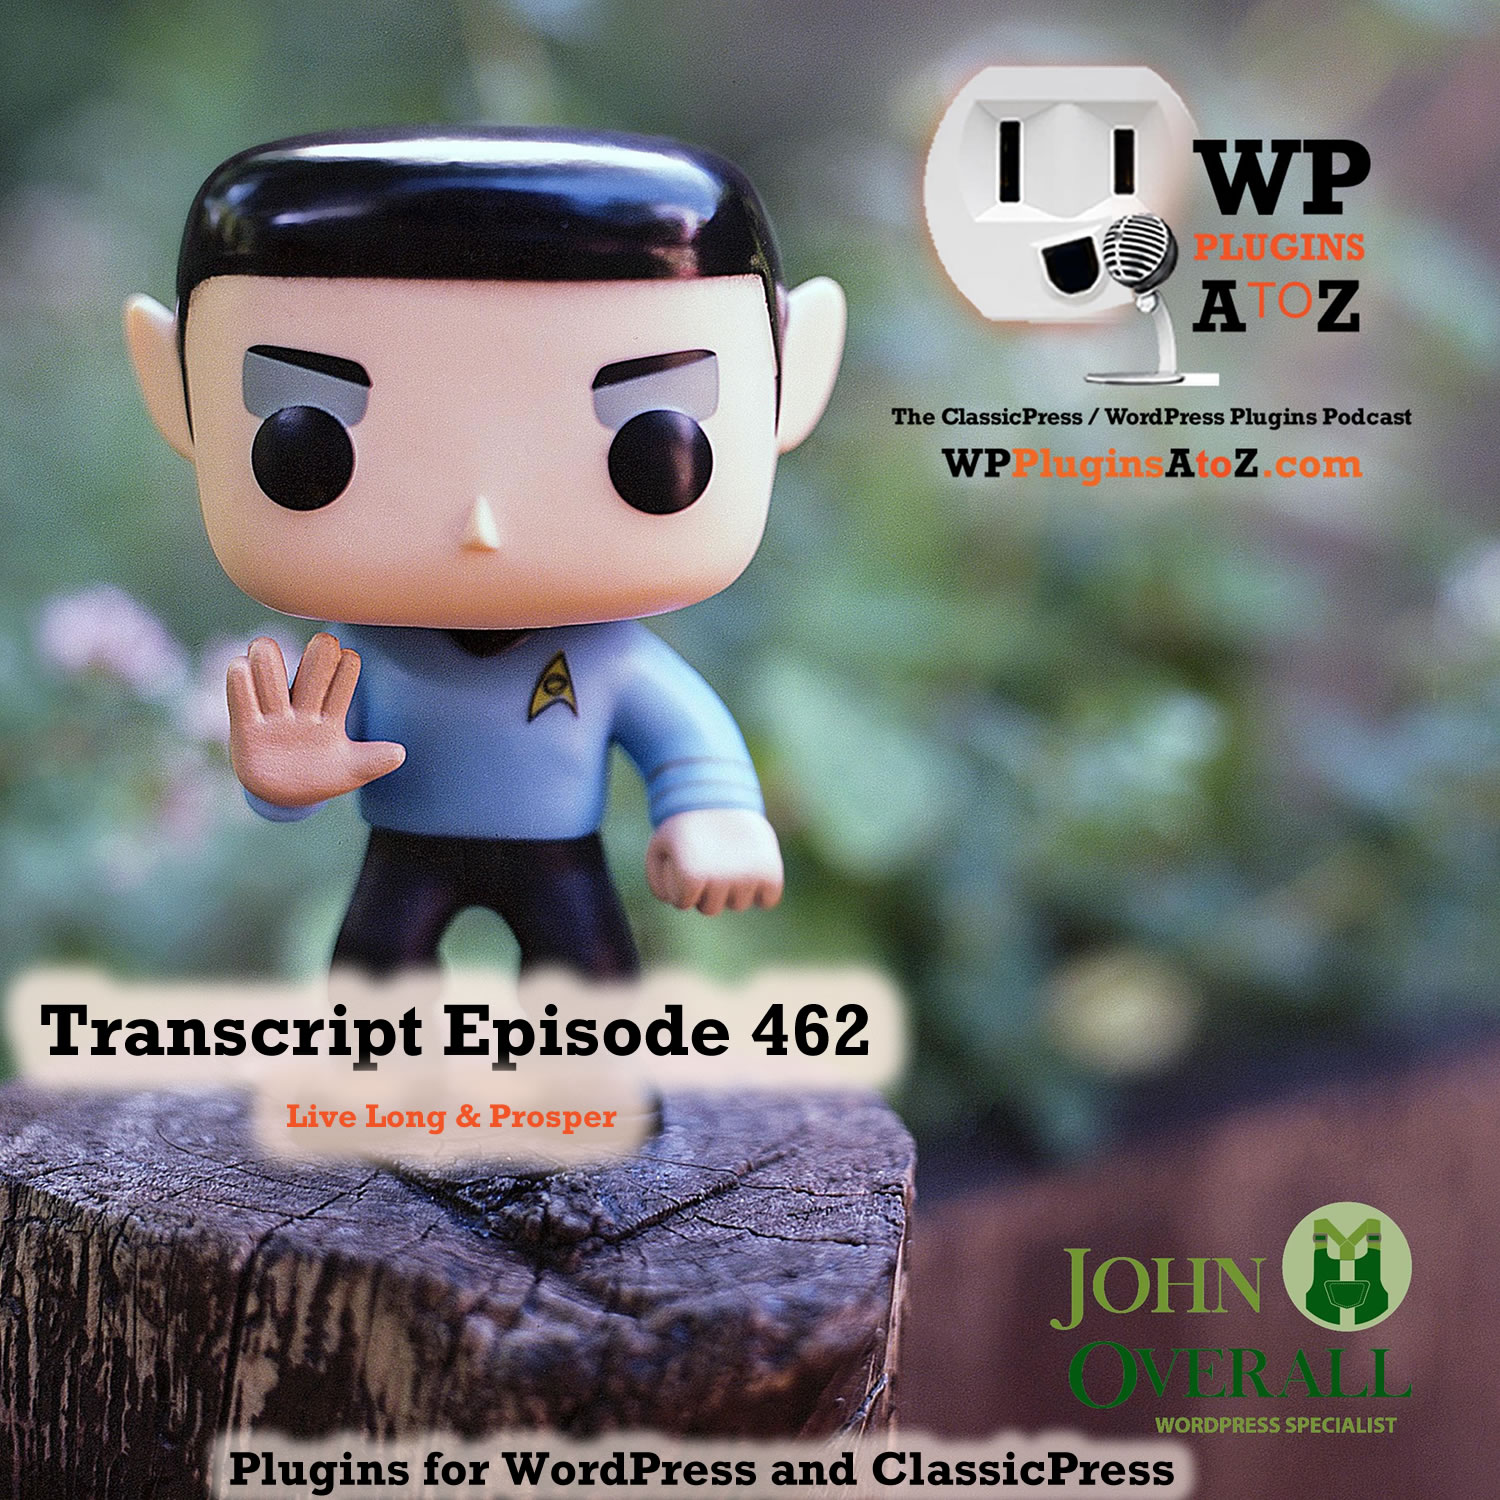 It's Episode 462 with plugins for Deleting Items, Re-Ordering Your Life, Removing those Attachments and ClassicPress Options. It's all coming up on WordPress Plugins A-Z!